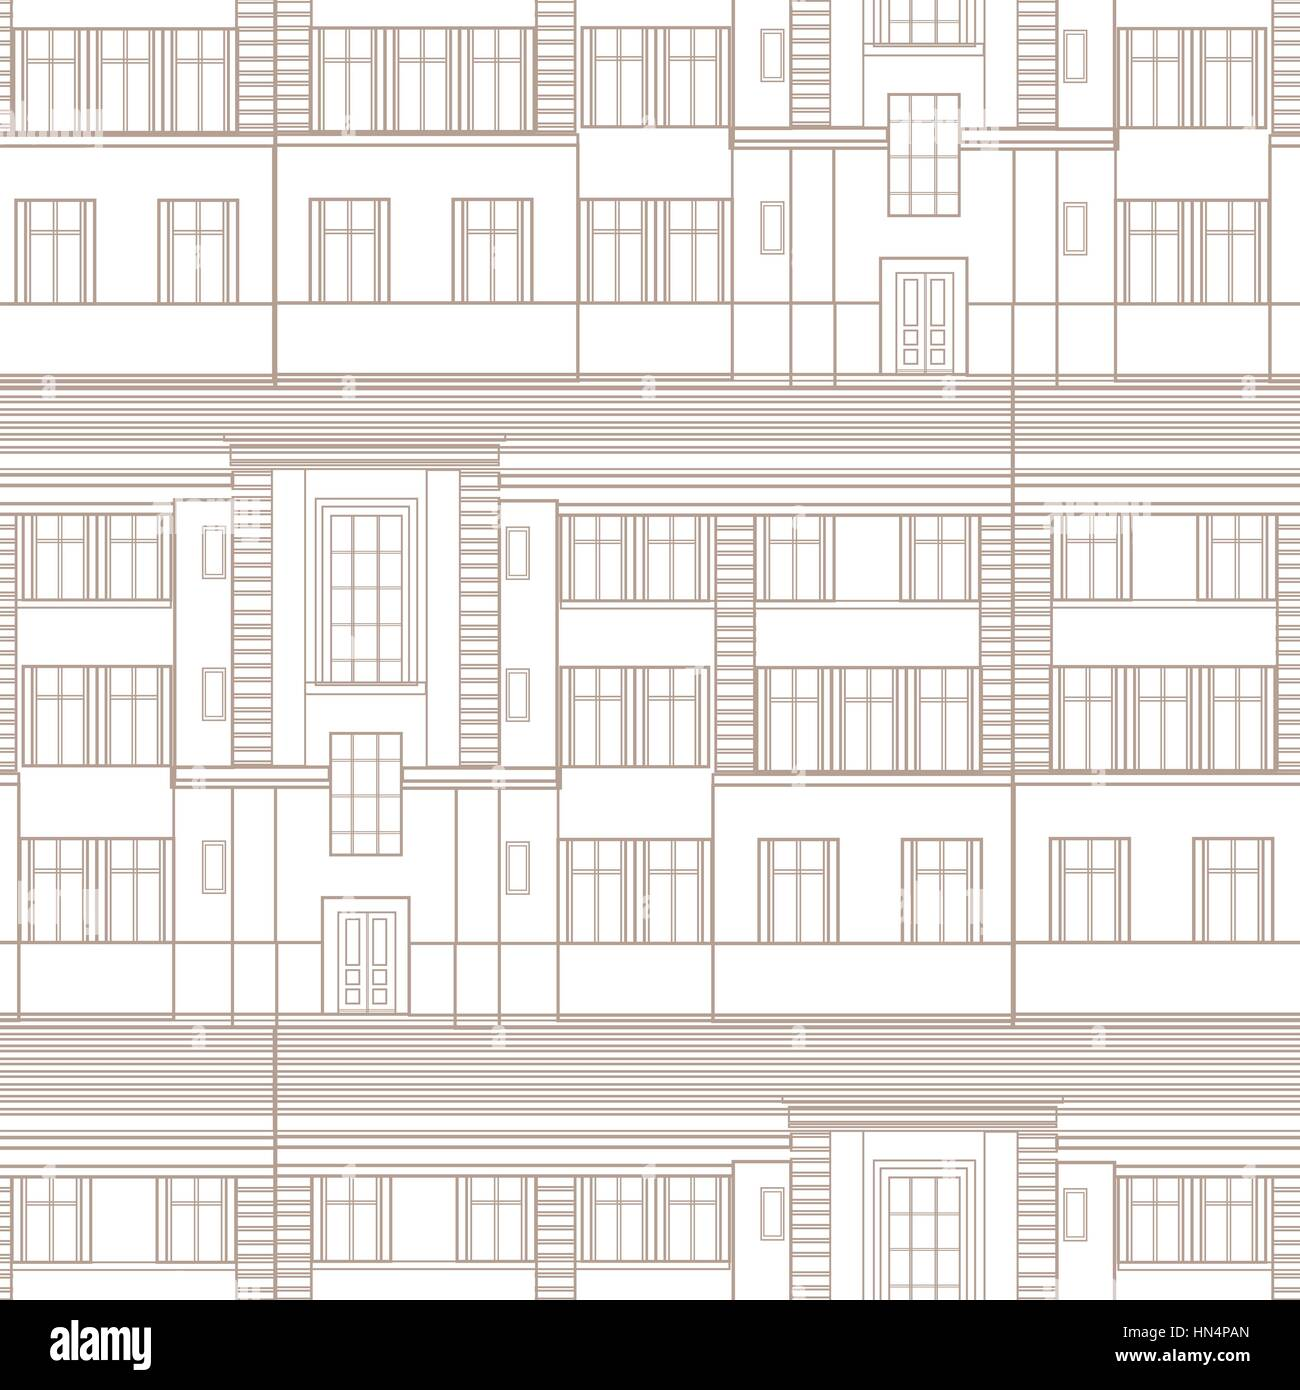 Building facade seamless pattern city architectural blueprint line building facade seamless pattern city architectural blueprint line background design element malvernweather Images